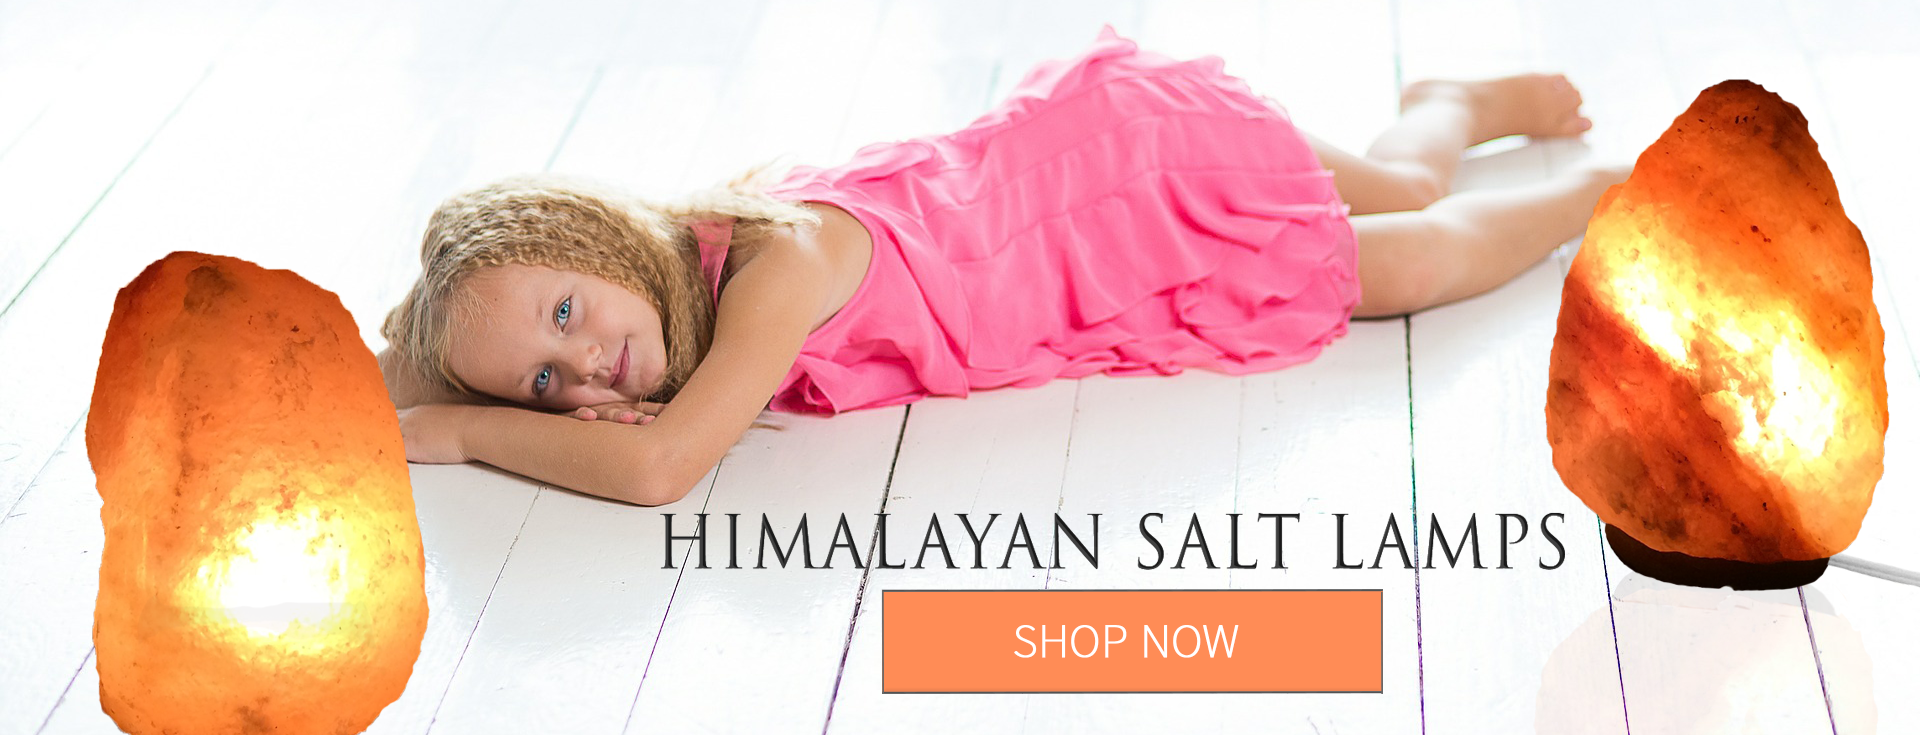 Himalayan Salt Lamps Sets